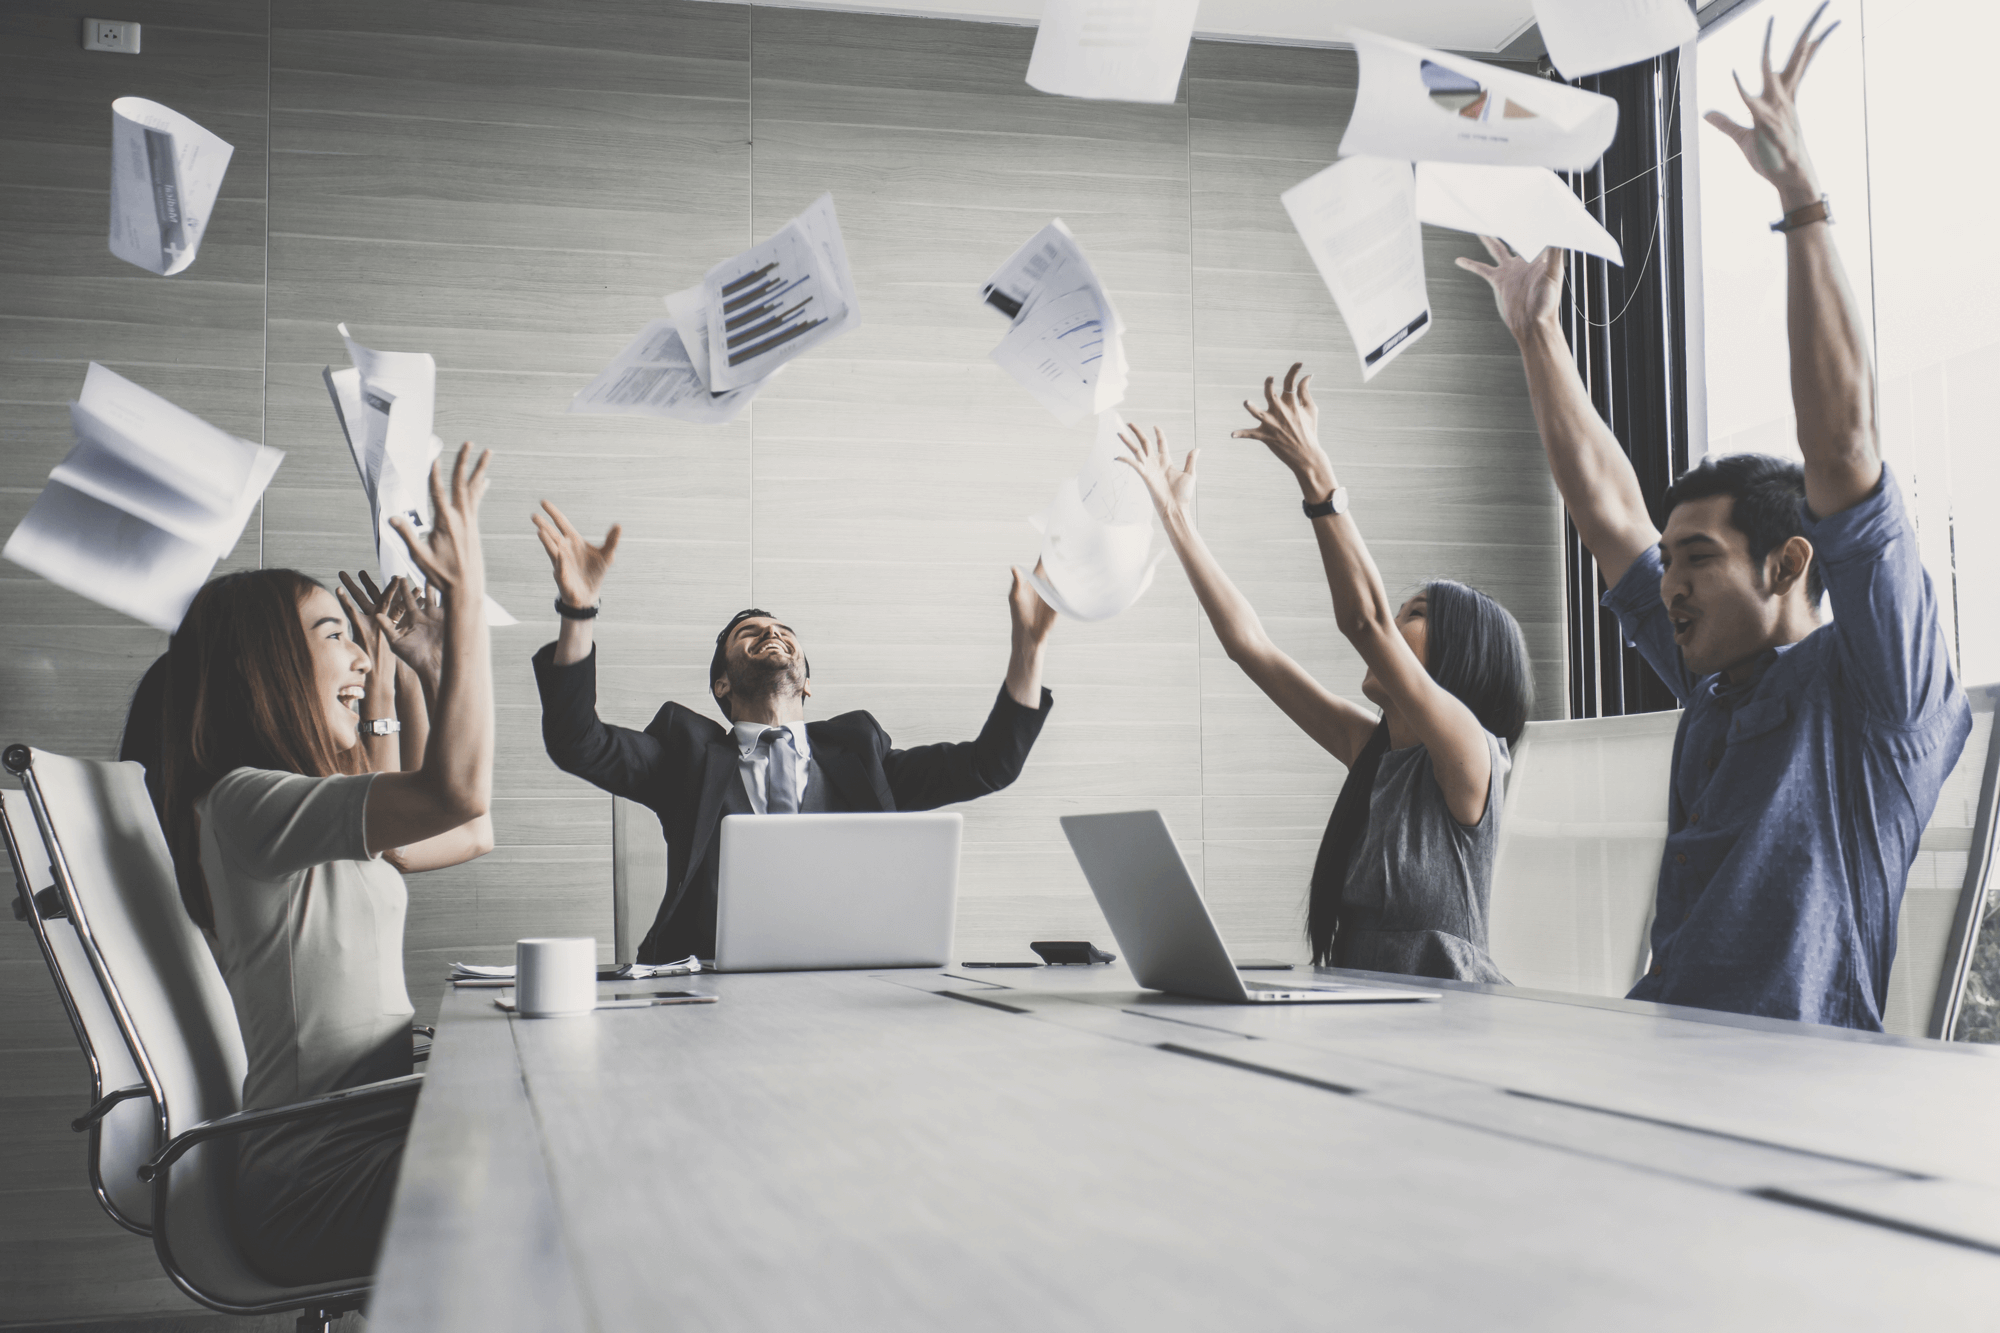 Performance Management | Achieve your goal in 4 steps